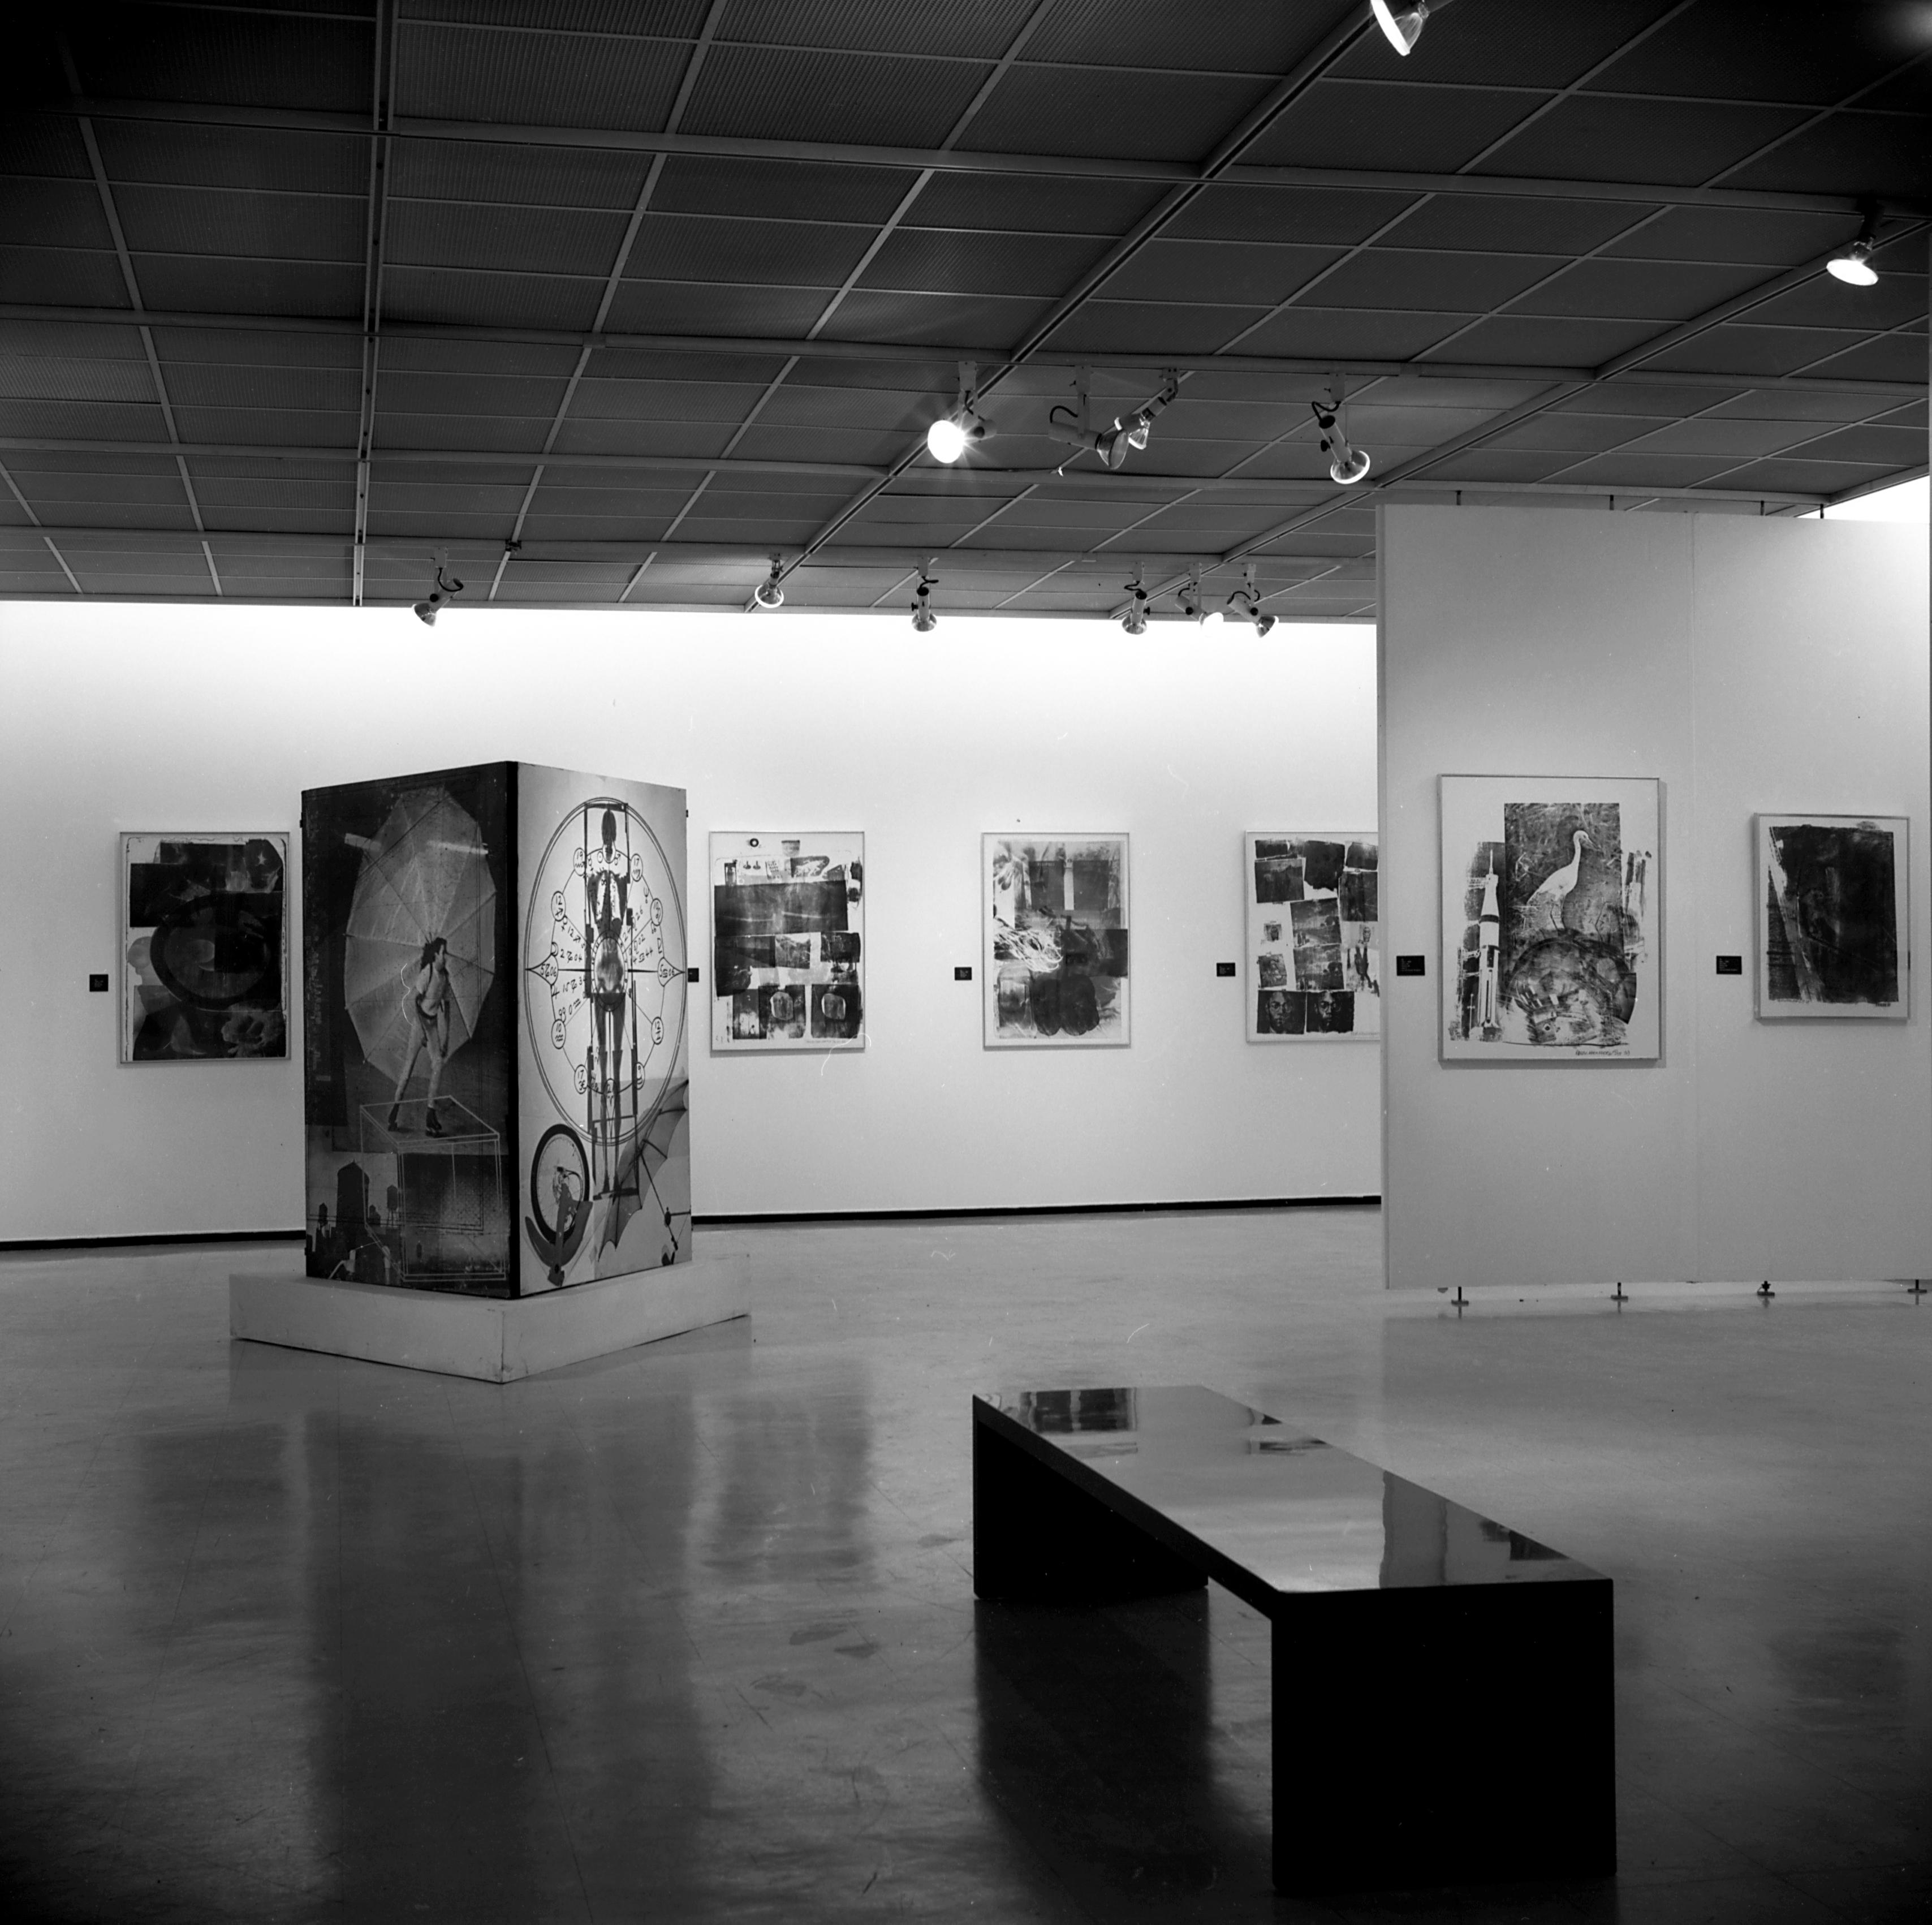 Black-and-white installation view of graphic artworks that appear collaged